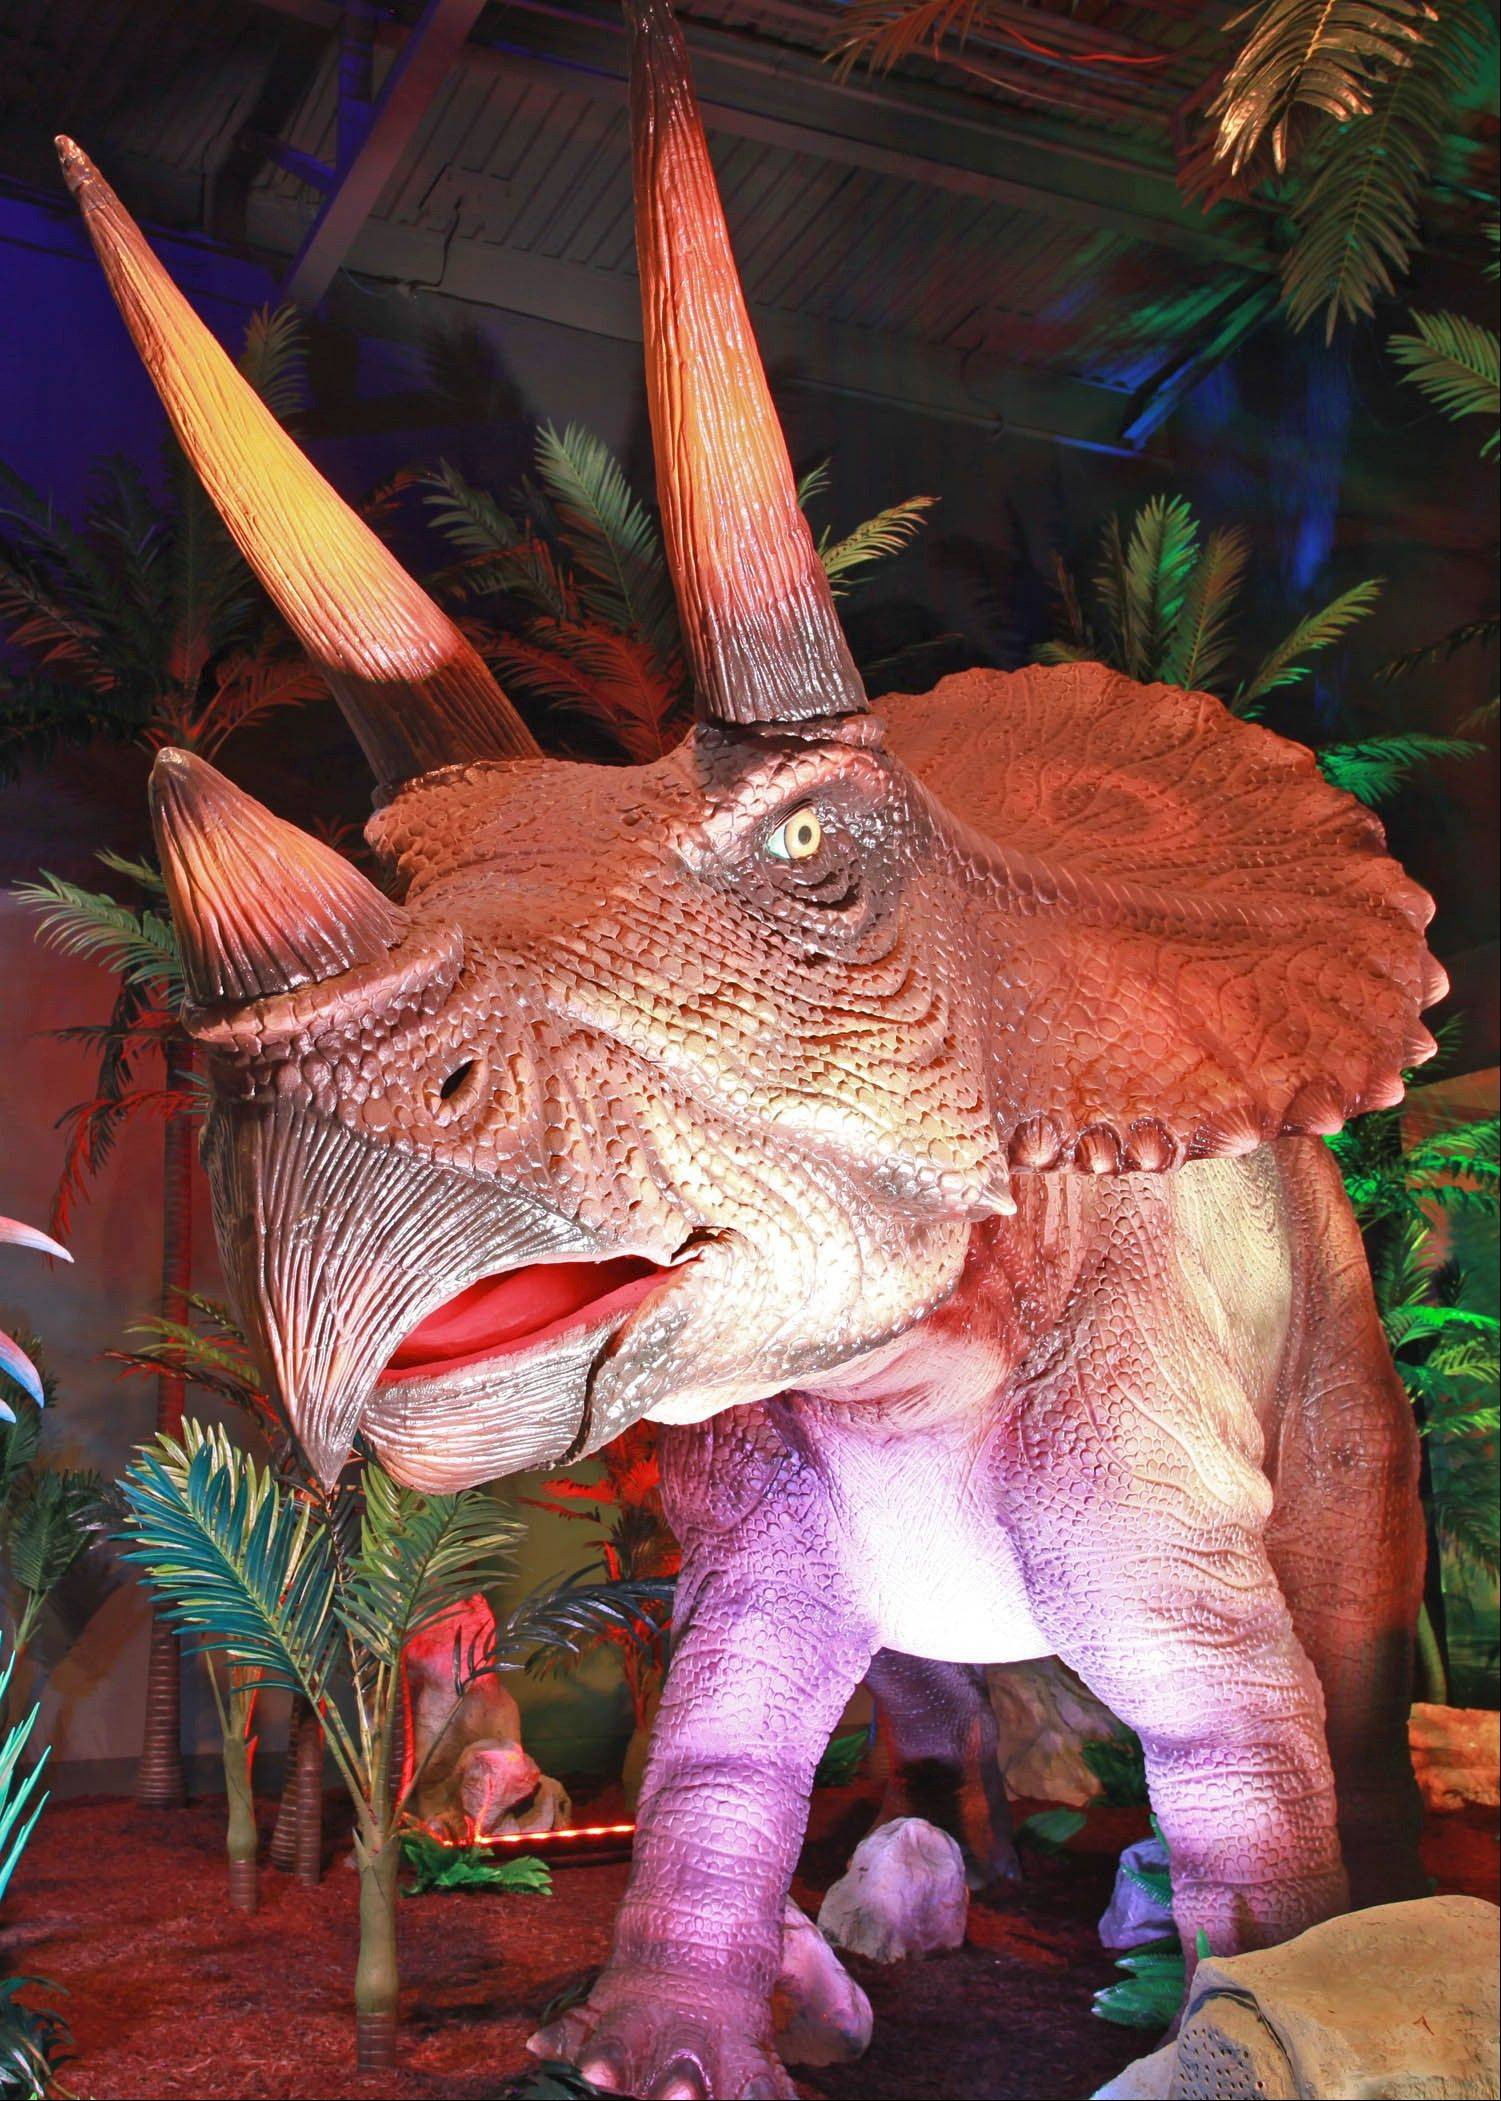 On Saturday, April 6, Brookfield Zoo welcomes back 24 animatronic dinosaurs, such as this Triceratops, in the return visit of its Dinosaurs Alive! exhibit.